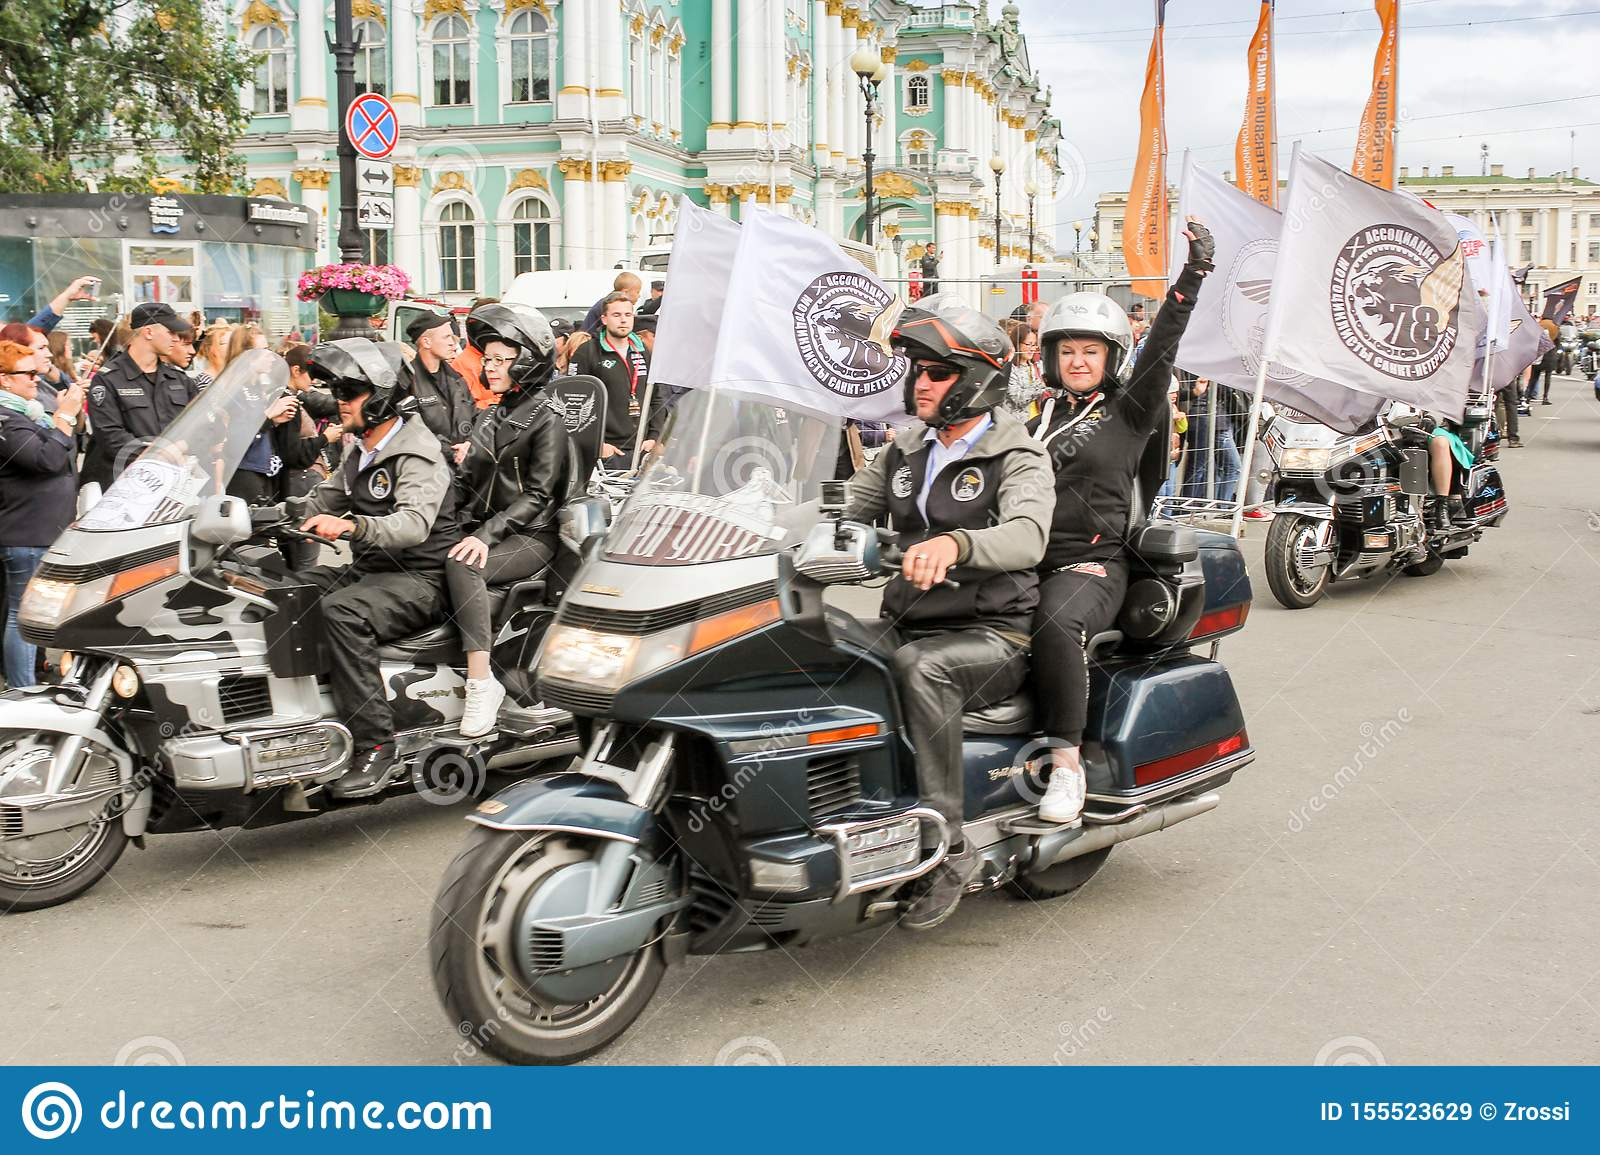 A group of motorcyclists with flags drives by